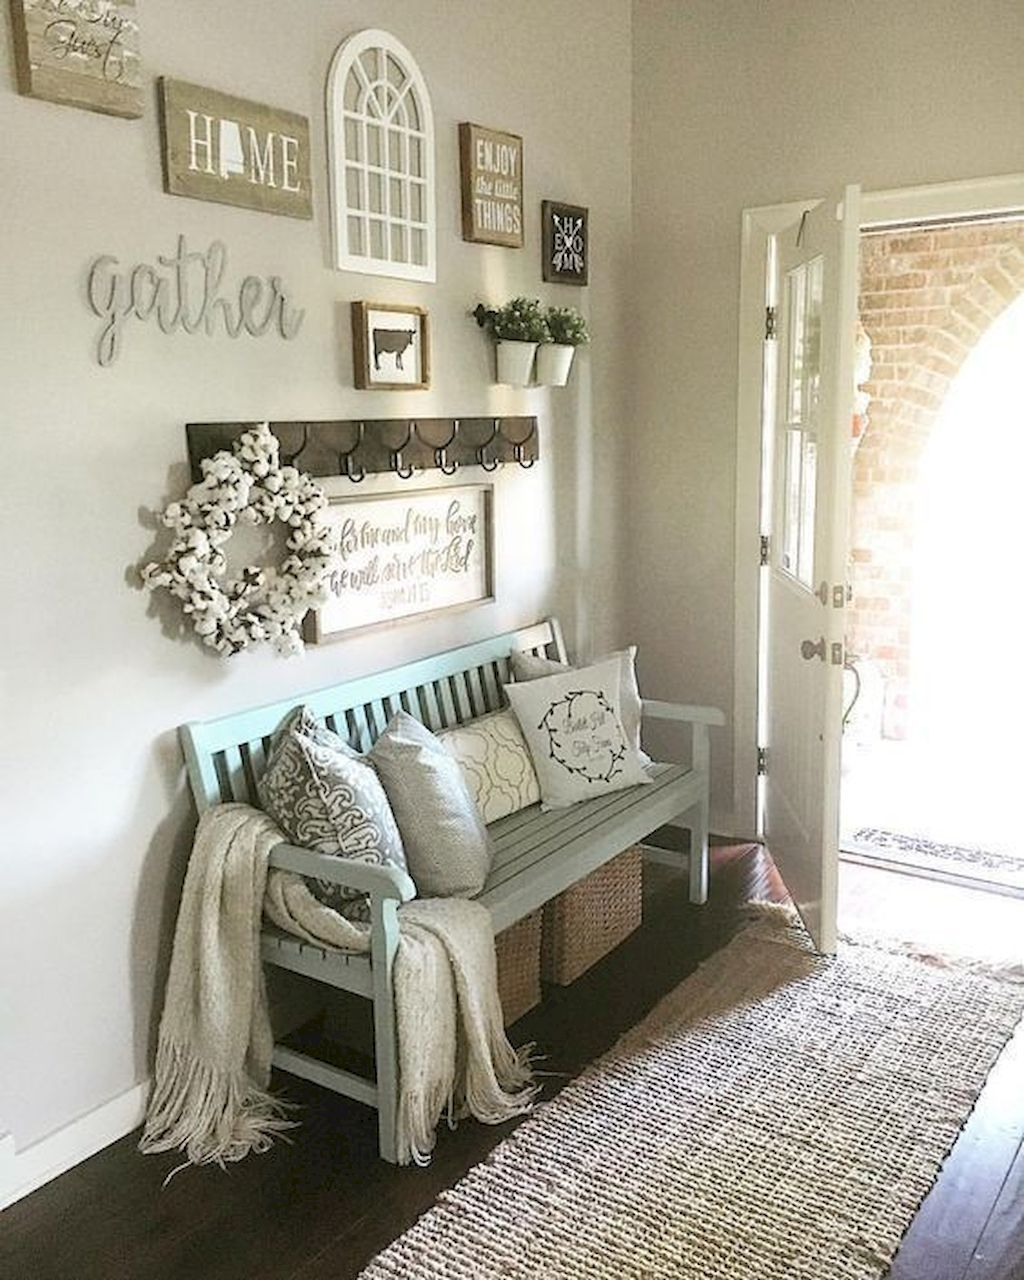 55 stunning rustic entryway decorating ideas ideas for the new rh pinterest com